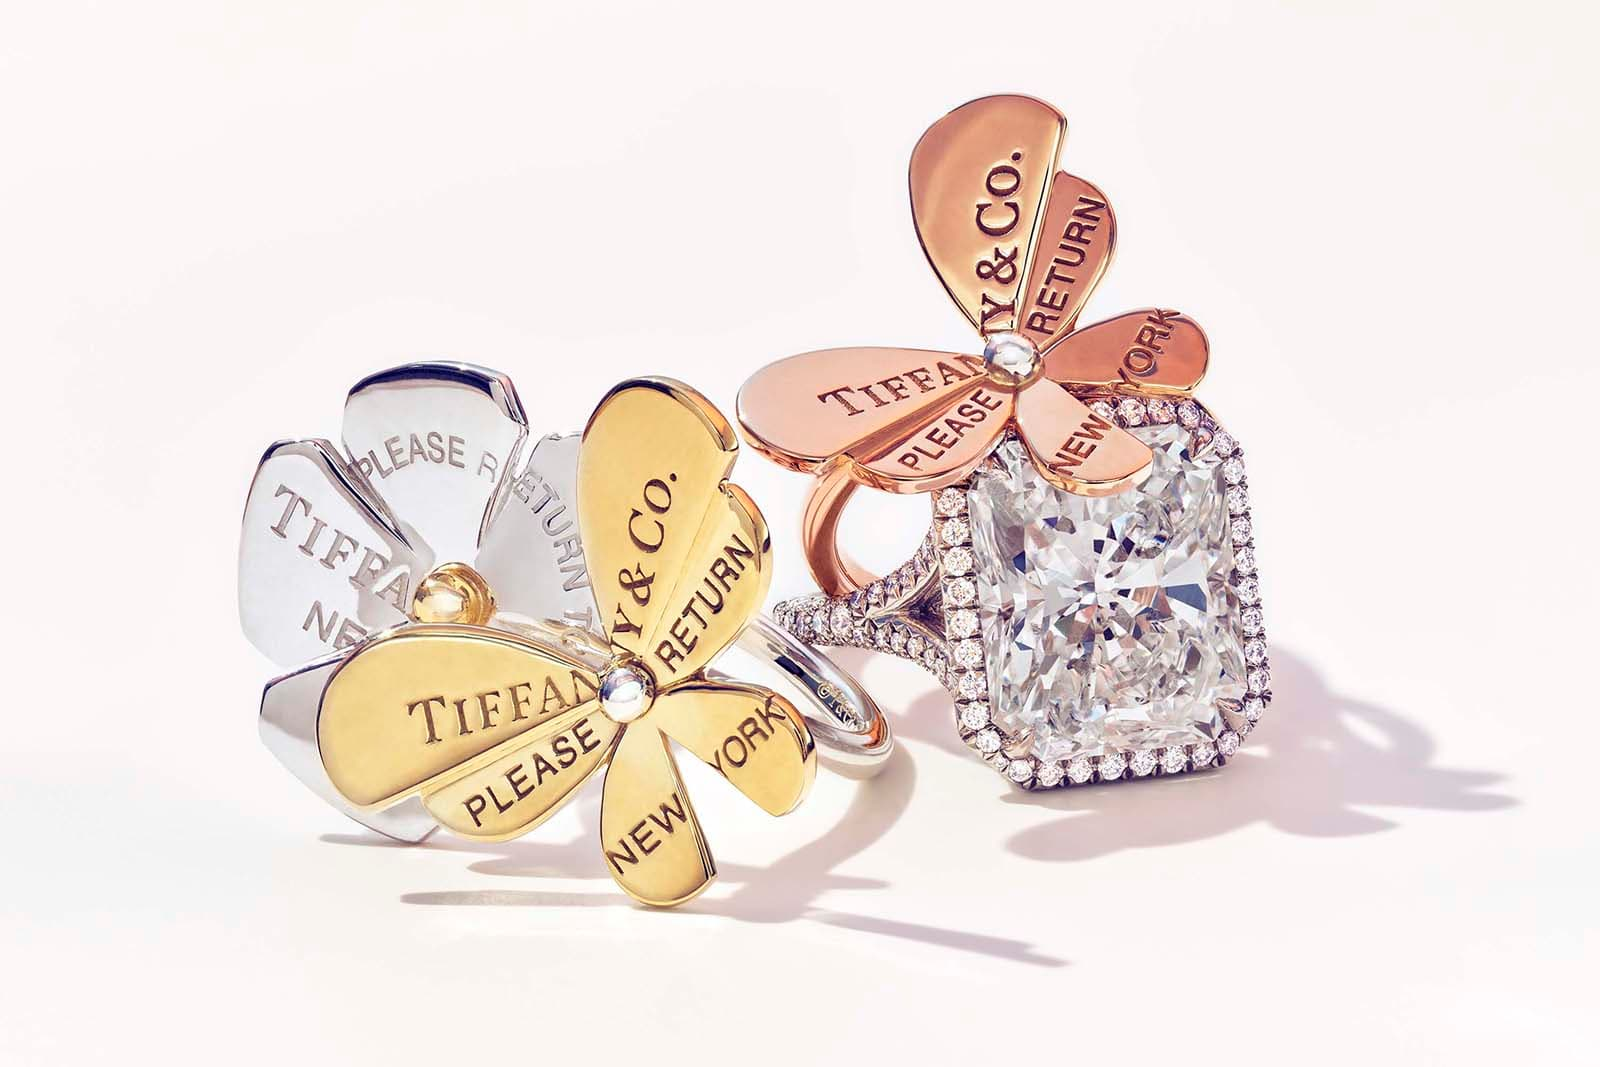 Tiffany&Co. 'Return to Tiffany Love Bugs' collection rings with diamond ring in yellow, rose and white gold and silver